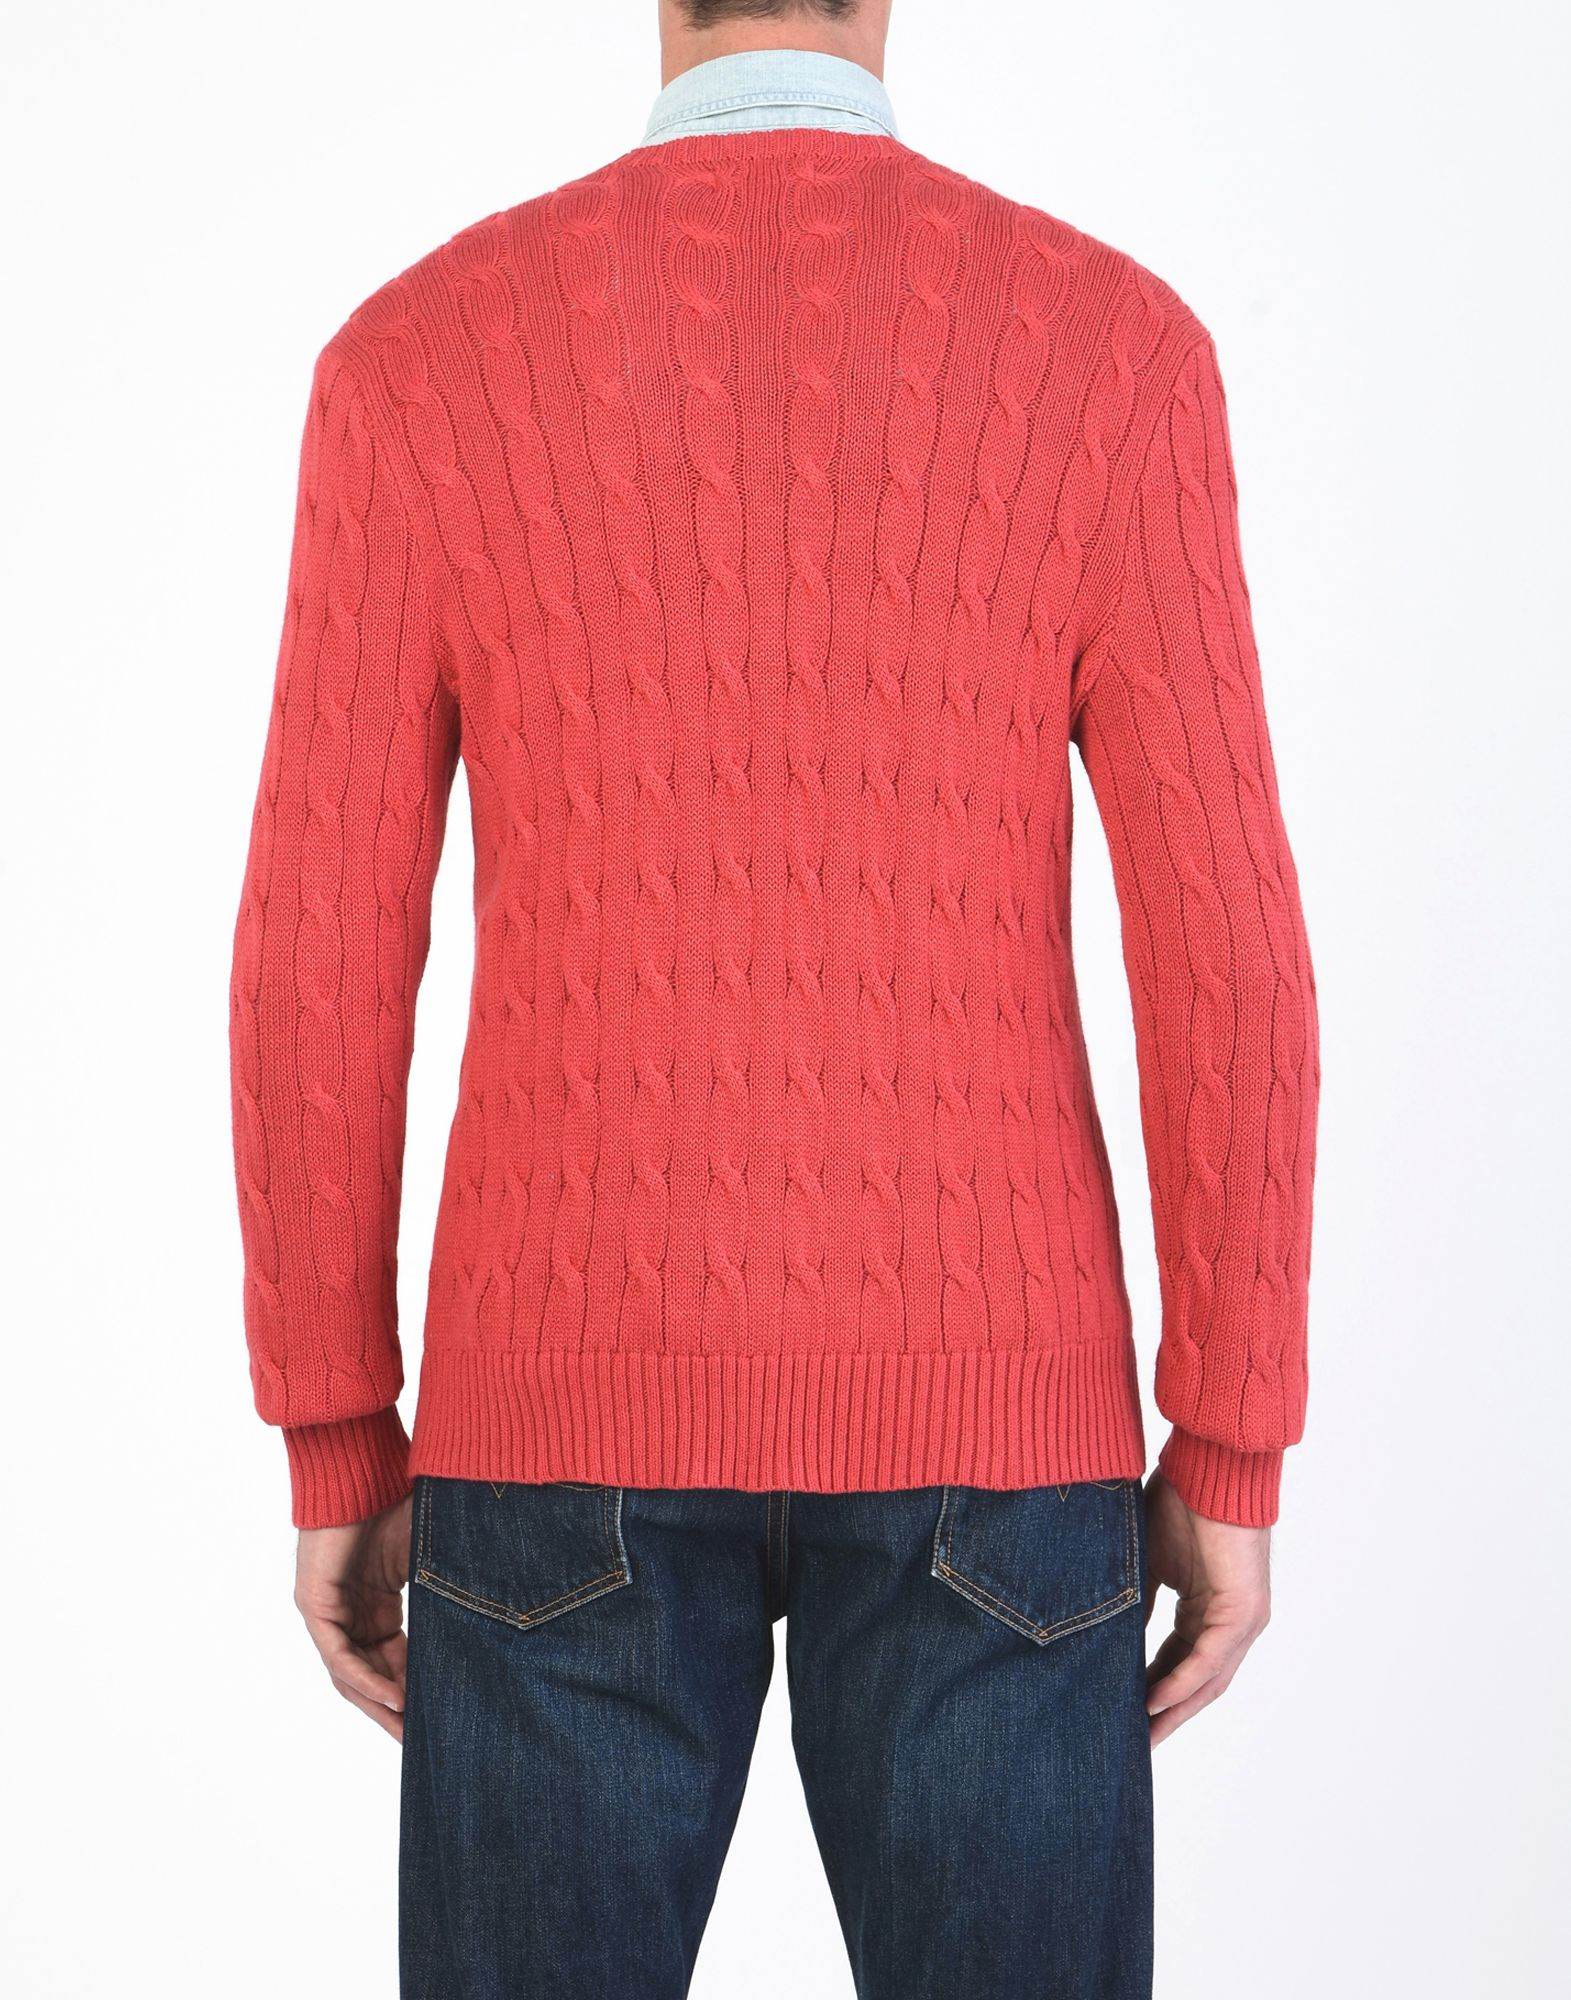 Pullover Polo Ralph Lauren Cable Sweater 39881744DF - Uomo - 39881744DF Sweater 67714f